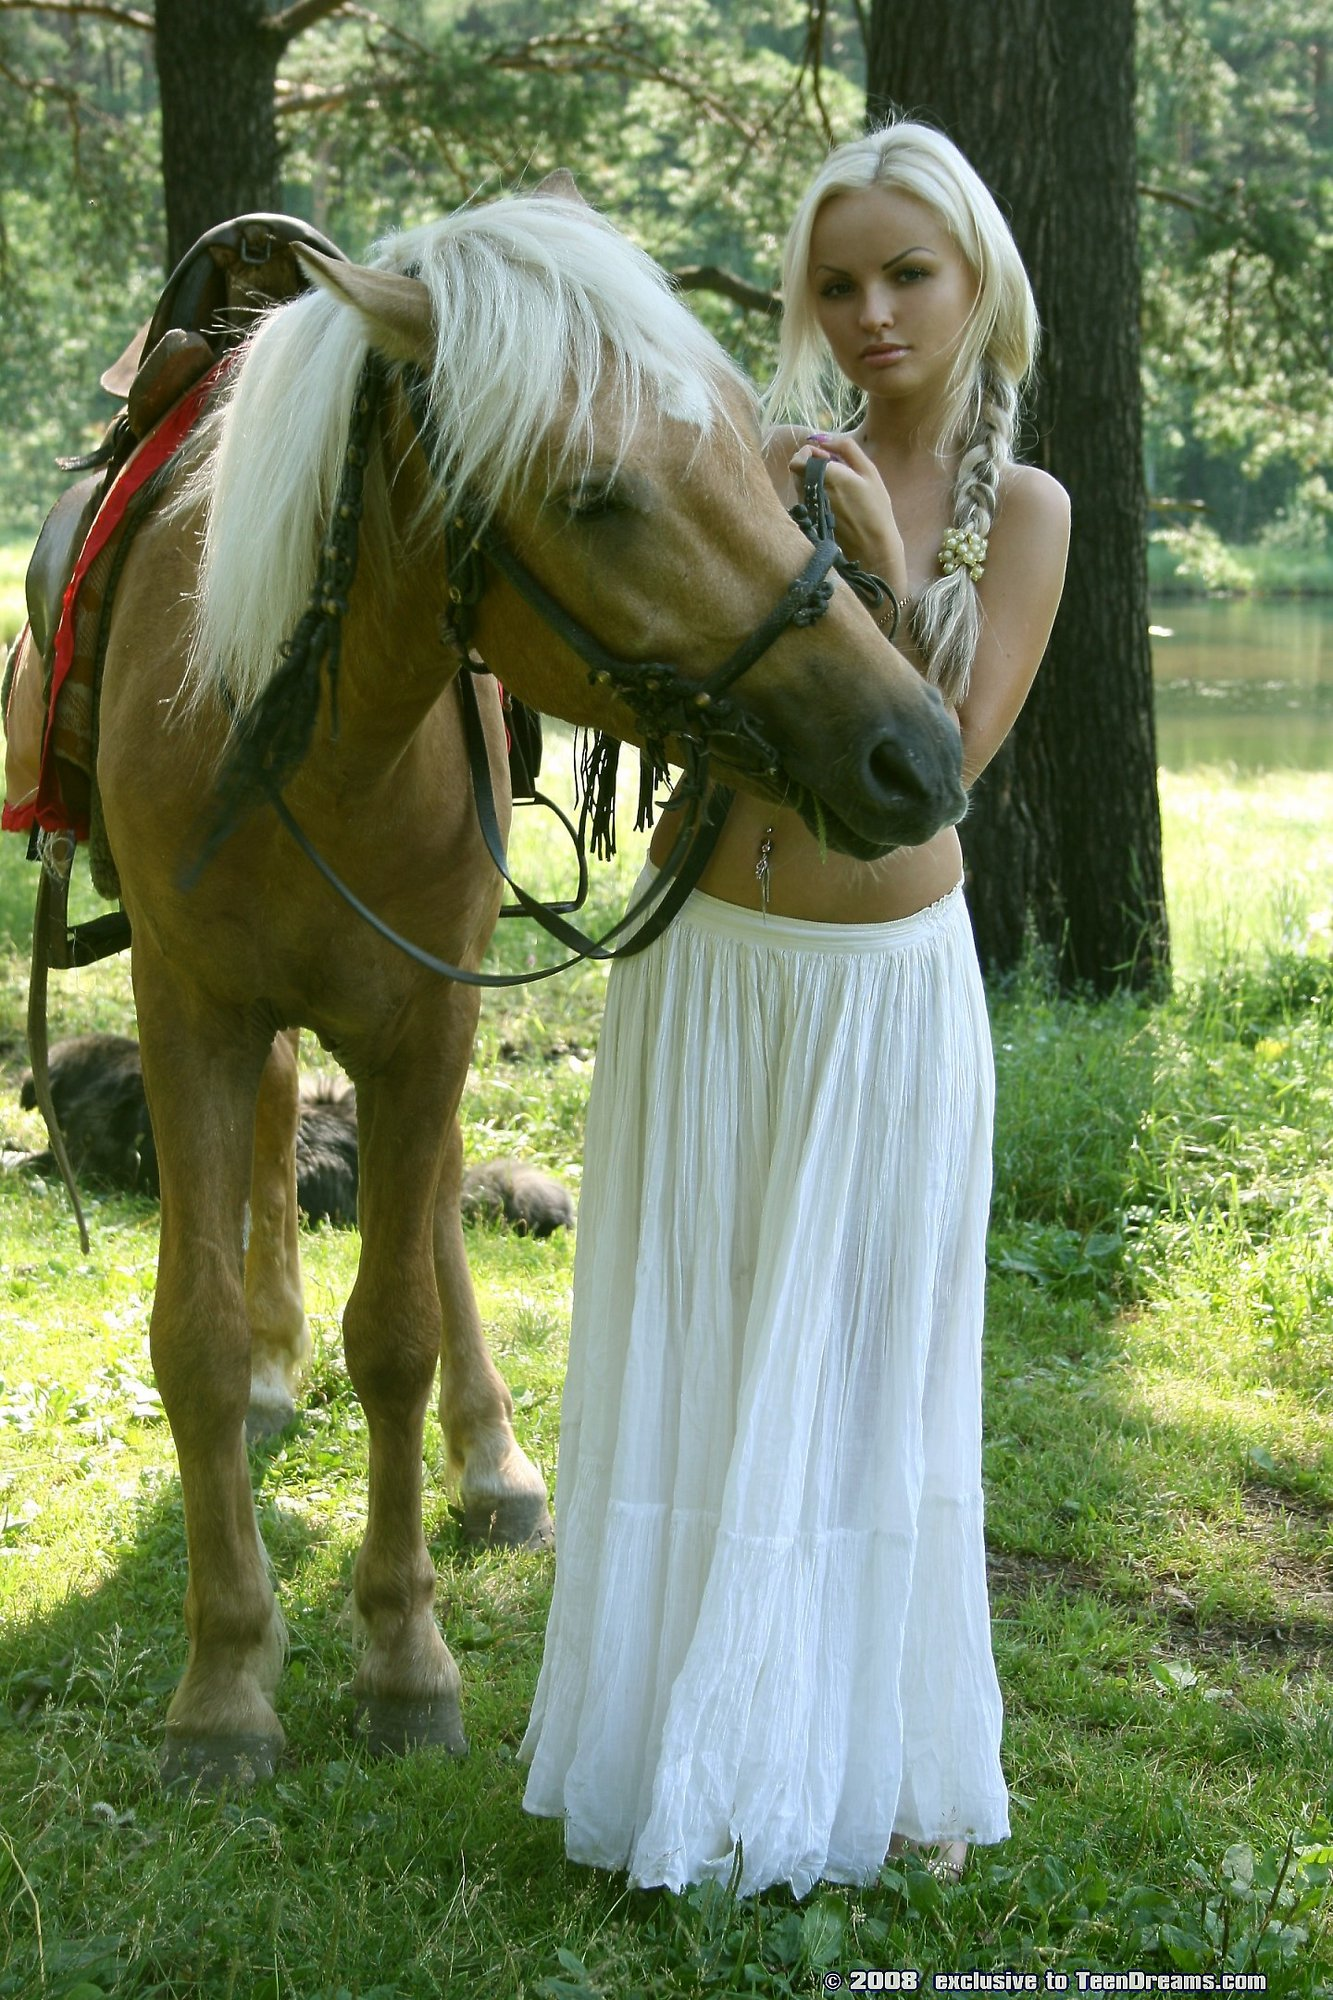 Pretty Blonde Riding Horse Naked In Woods - Mobile Porn Movies-5082